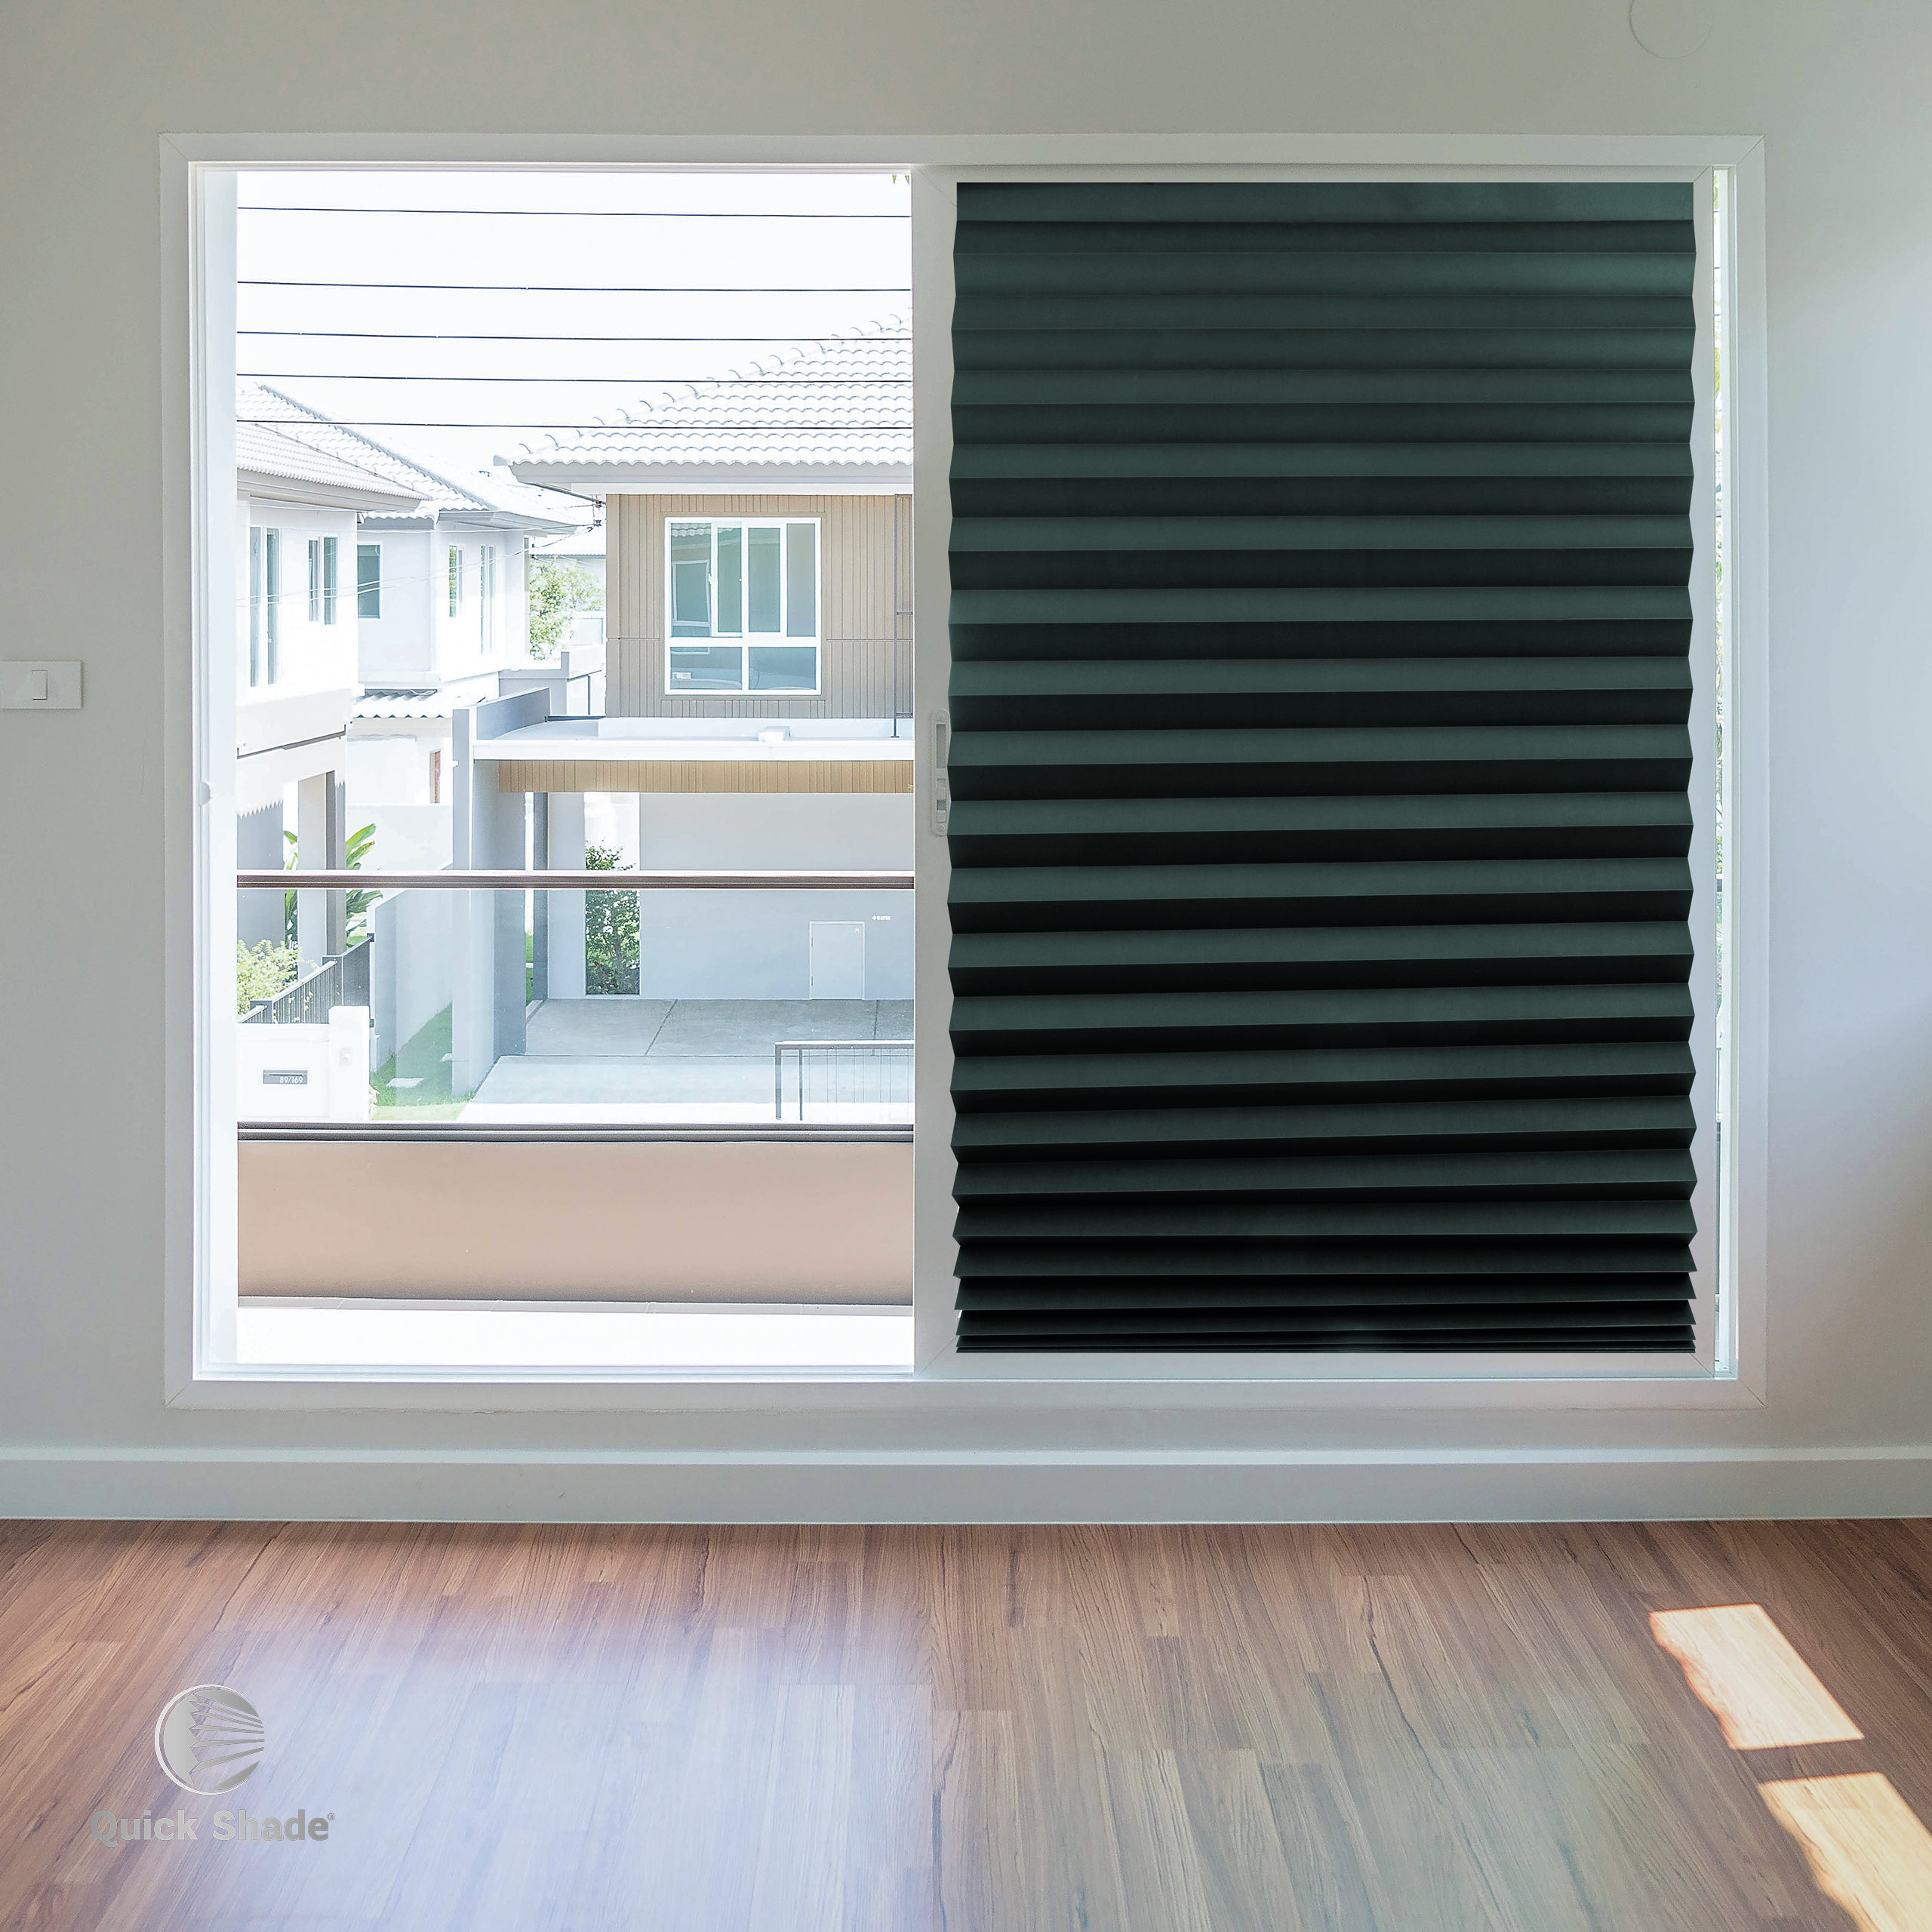 Instant Temporary Blinds Quick Shade